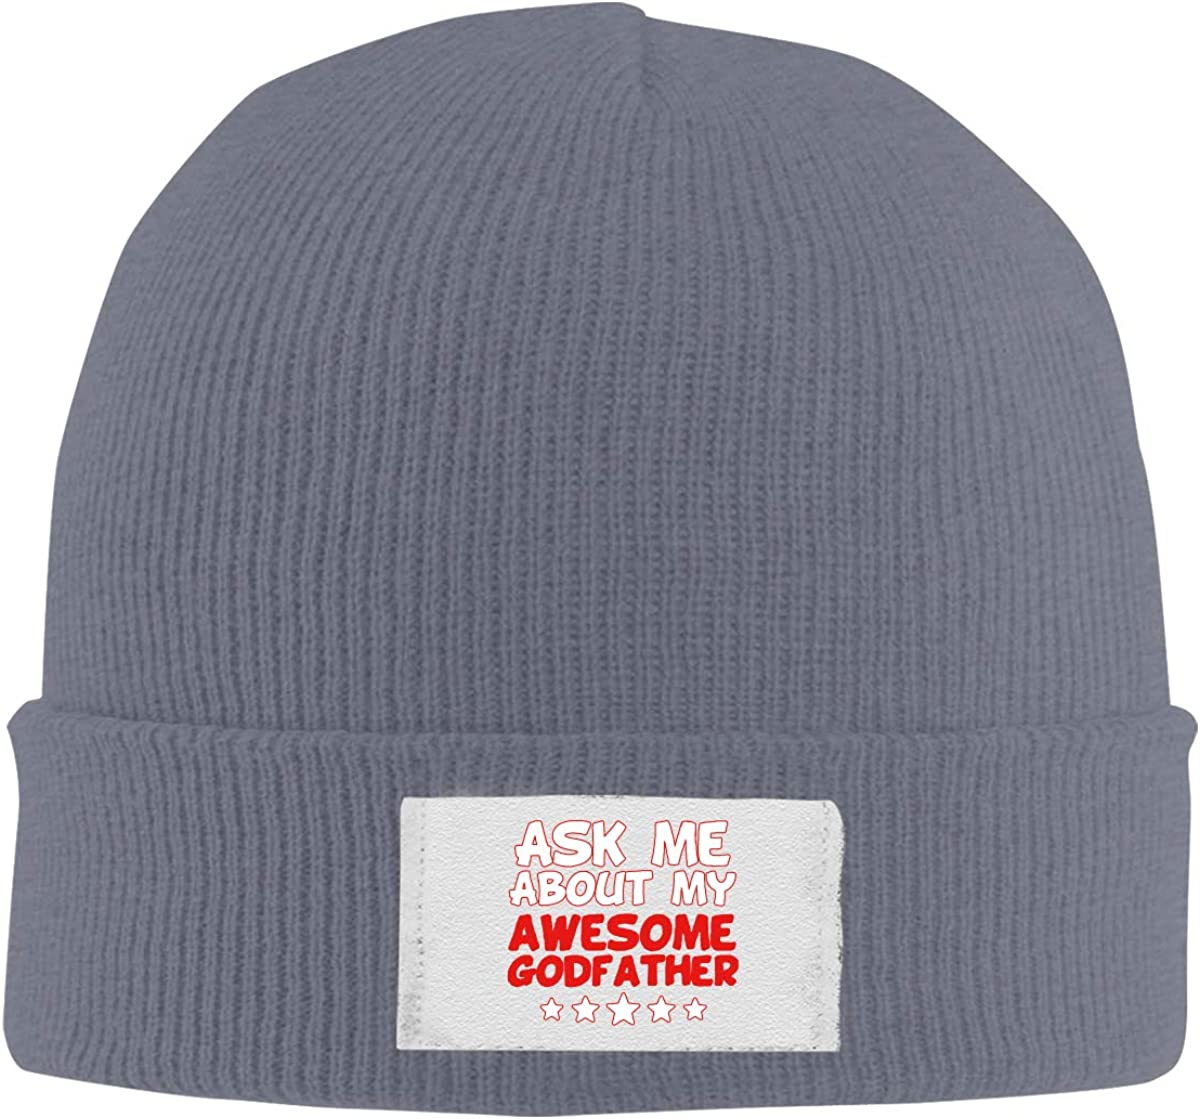 Paller My Awesome Godfather Knitted Hat Winter Outdoor Hat Warm Beanie Caps for Men Women